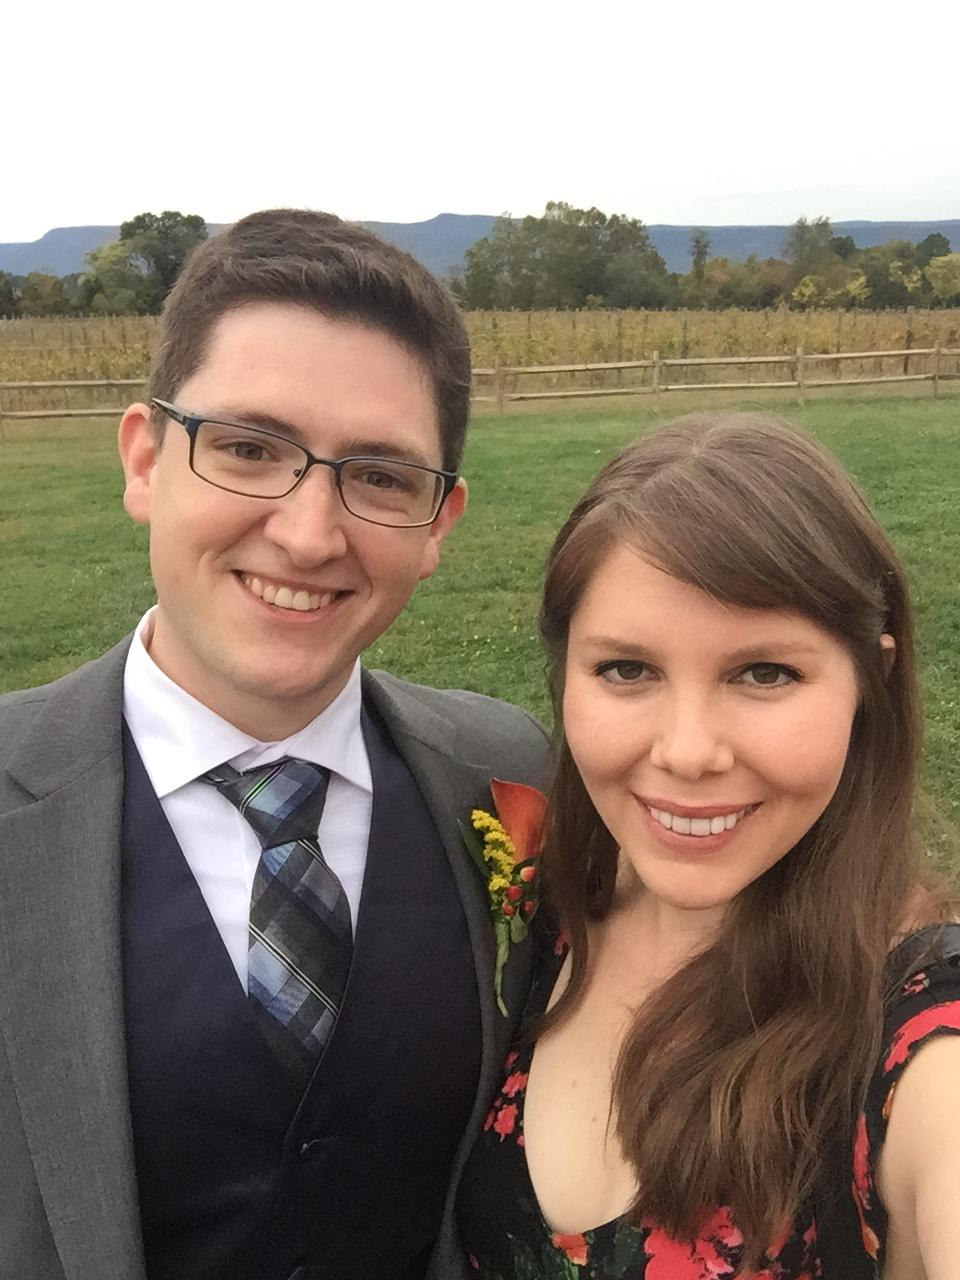 Celebrating our friends' wedding in Virginia (2017)